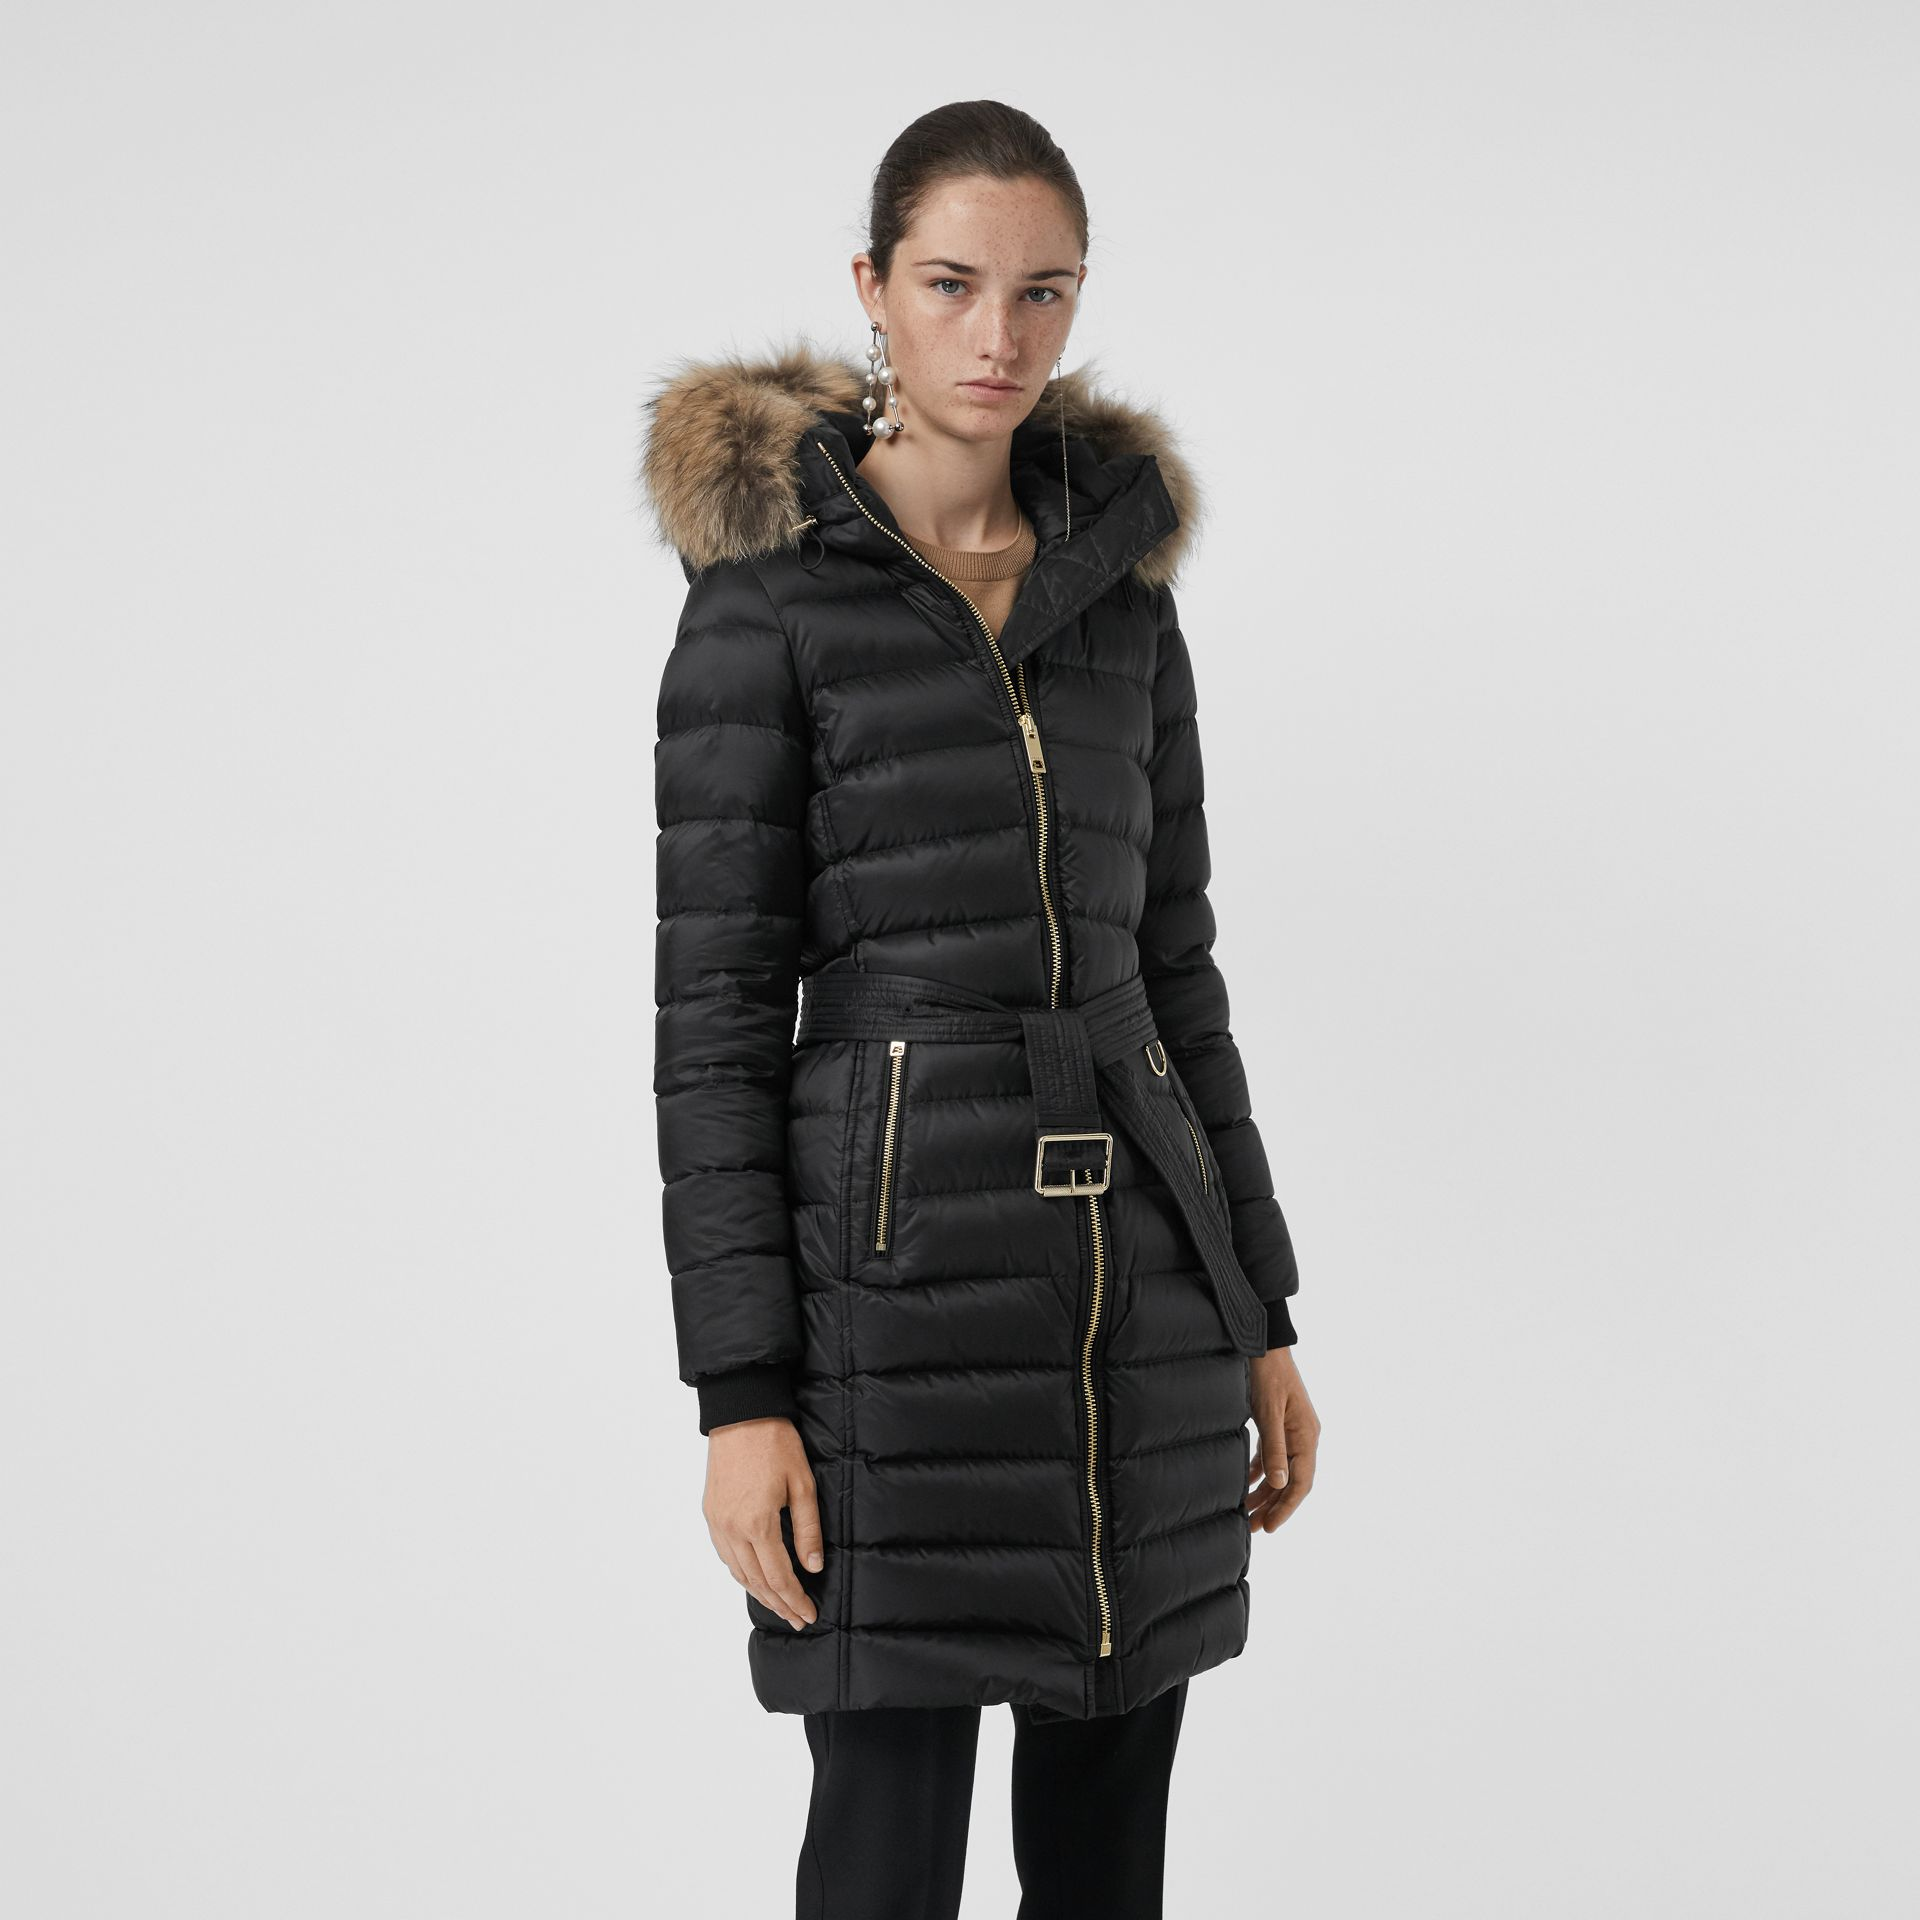 Detachable Fur Trim Down-filled Puffer Coat with Hood in Black - Women | Burberry United States - gallery image 5